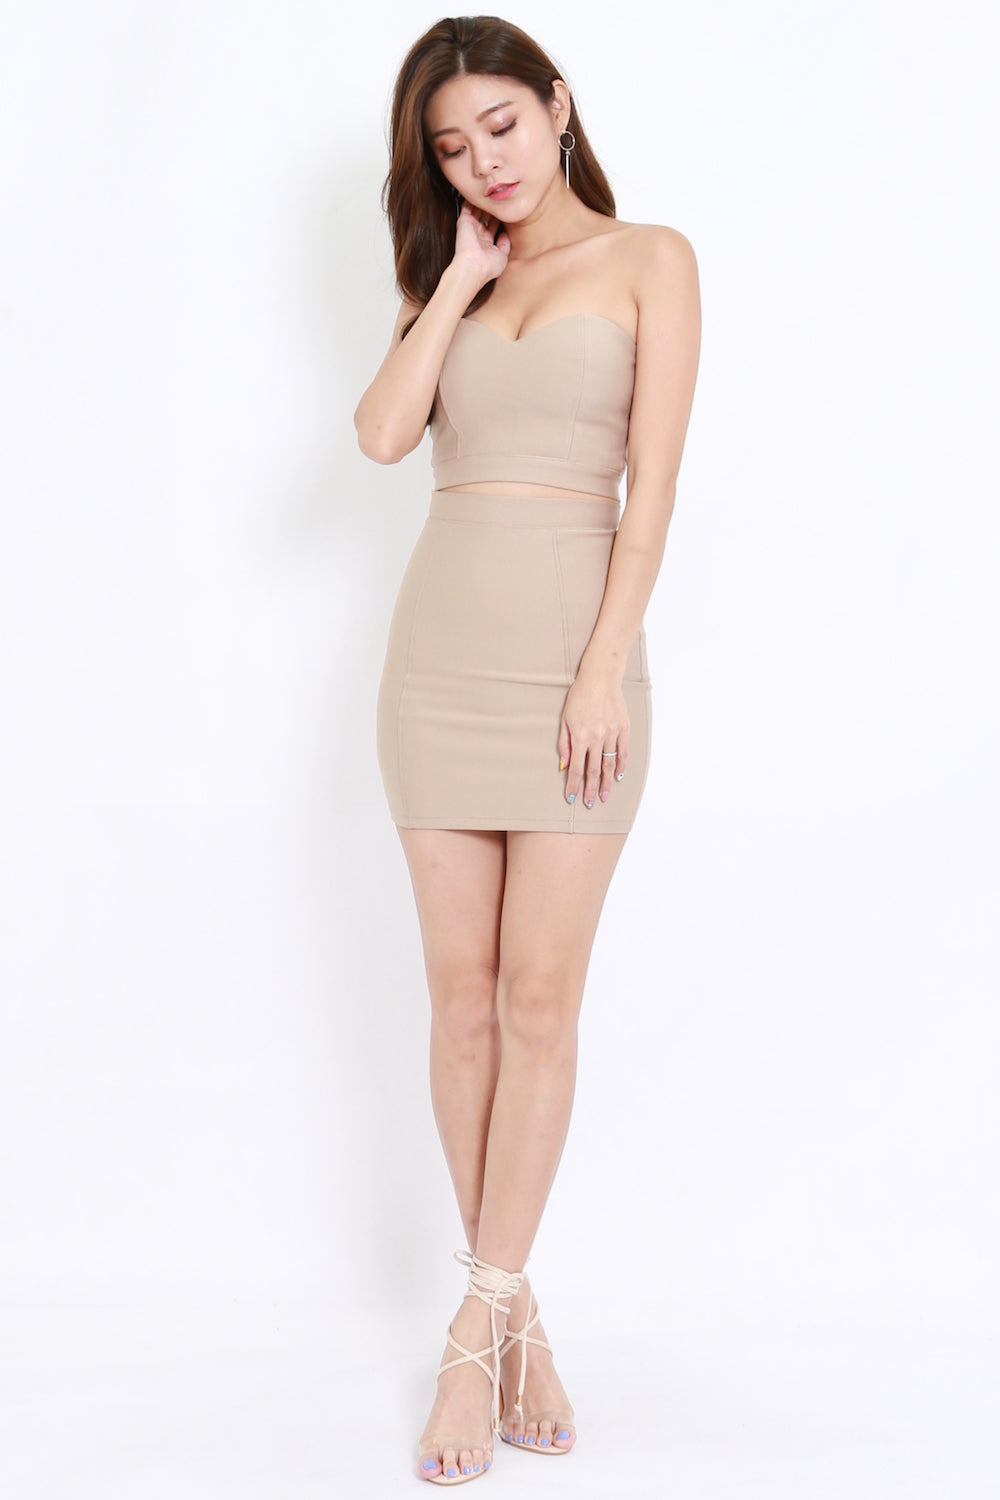 Back Cage Sweetheart Bralet 2pcs Set (Nude)